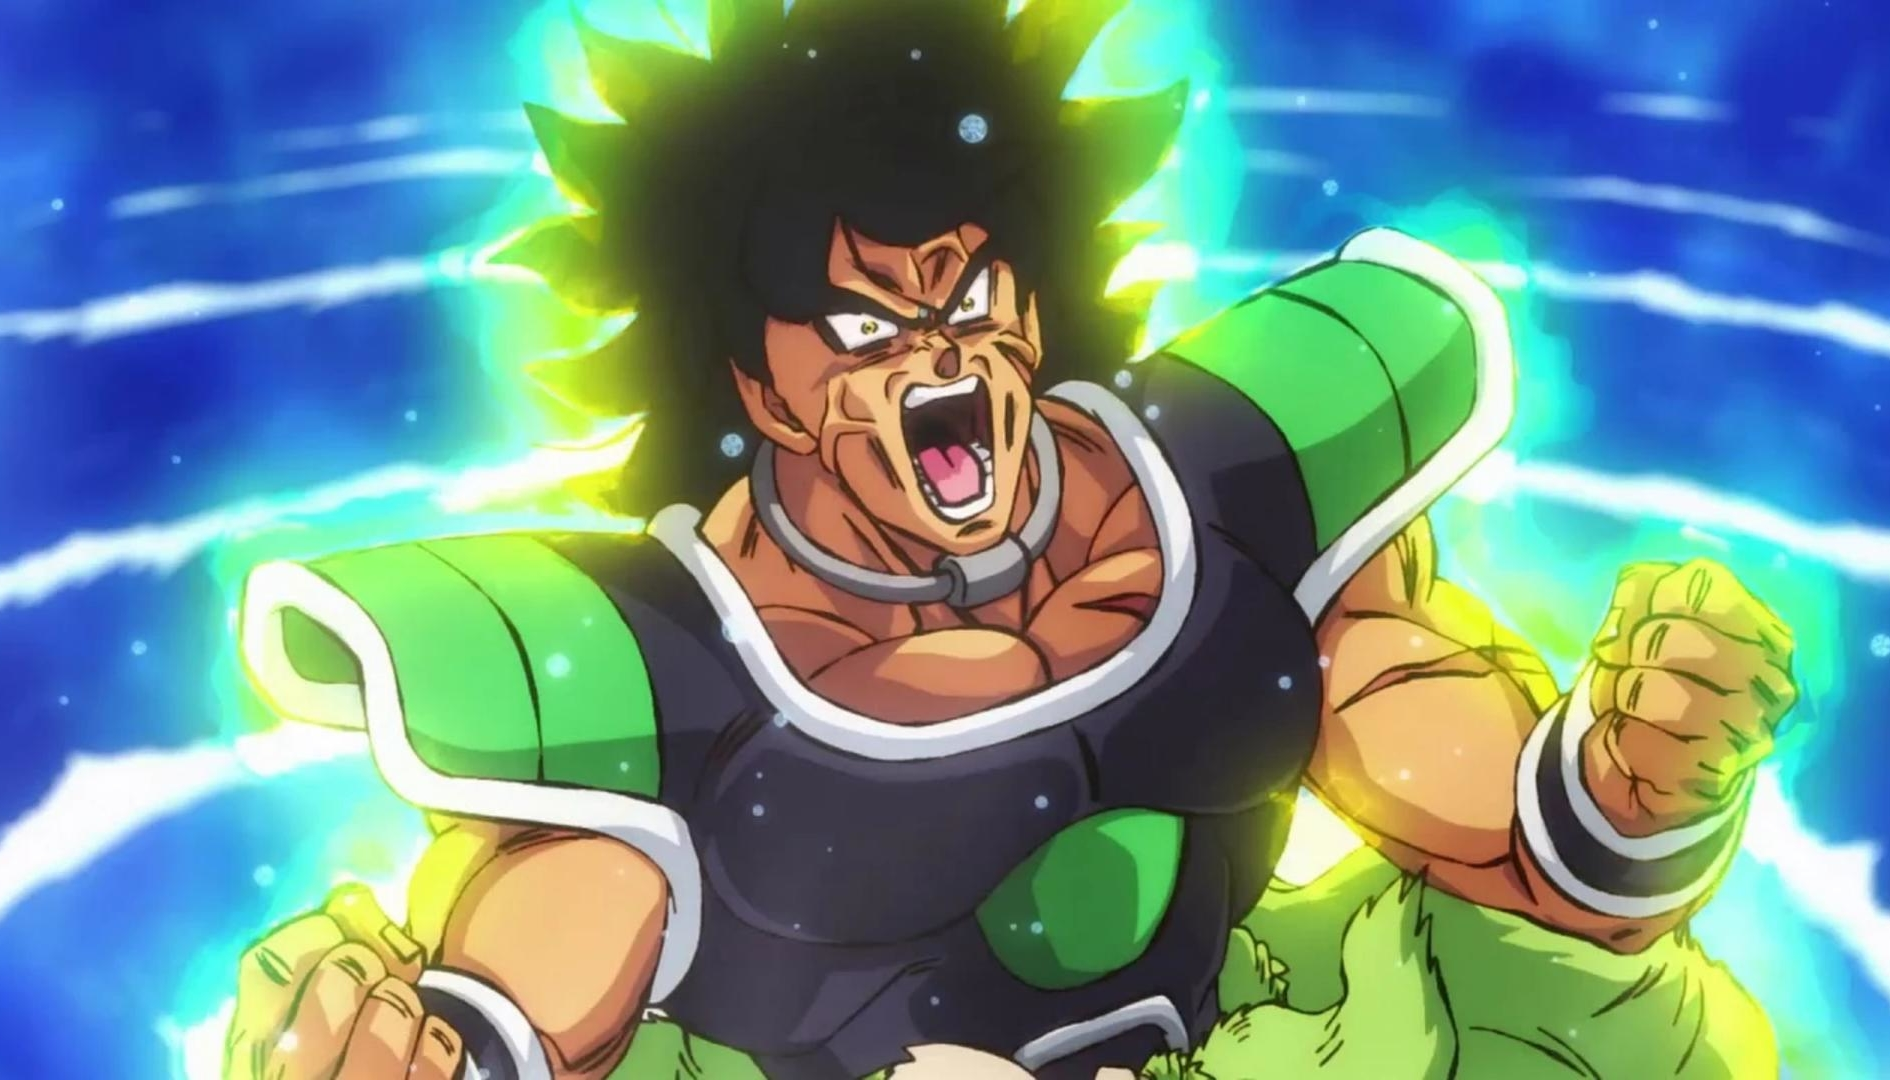 Dragon Ball FighterZ, annunciata la data di uscita di Broly di Dragon Ball Super